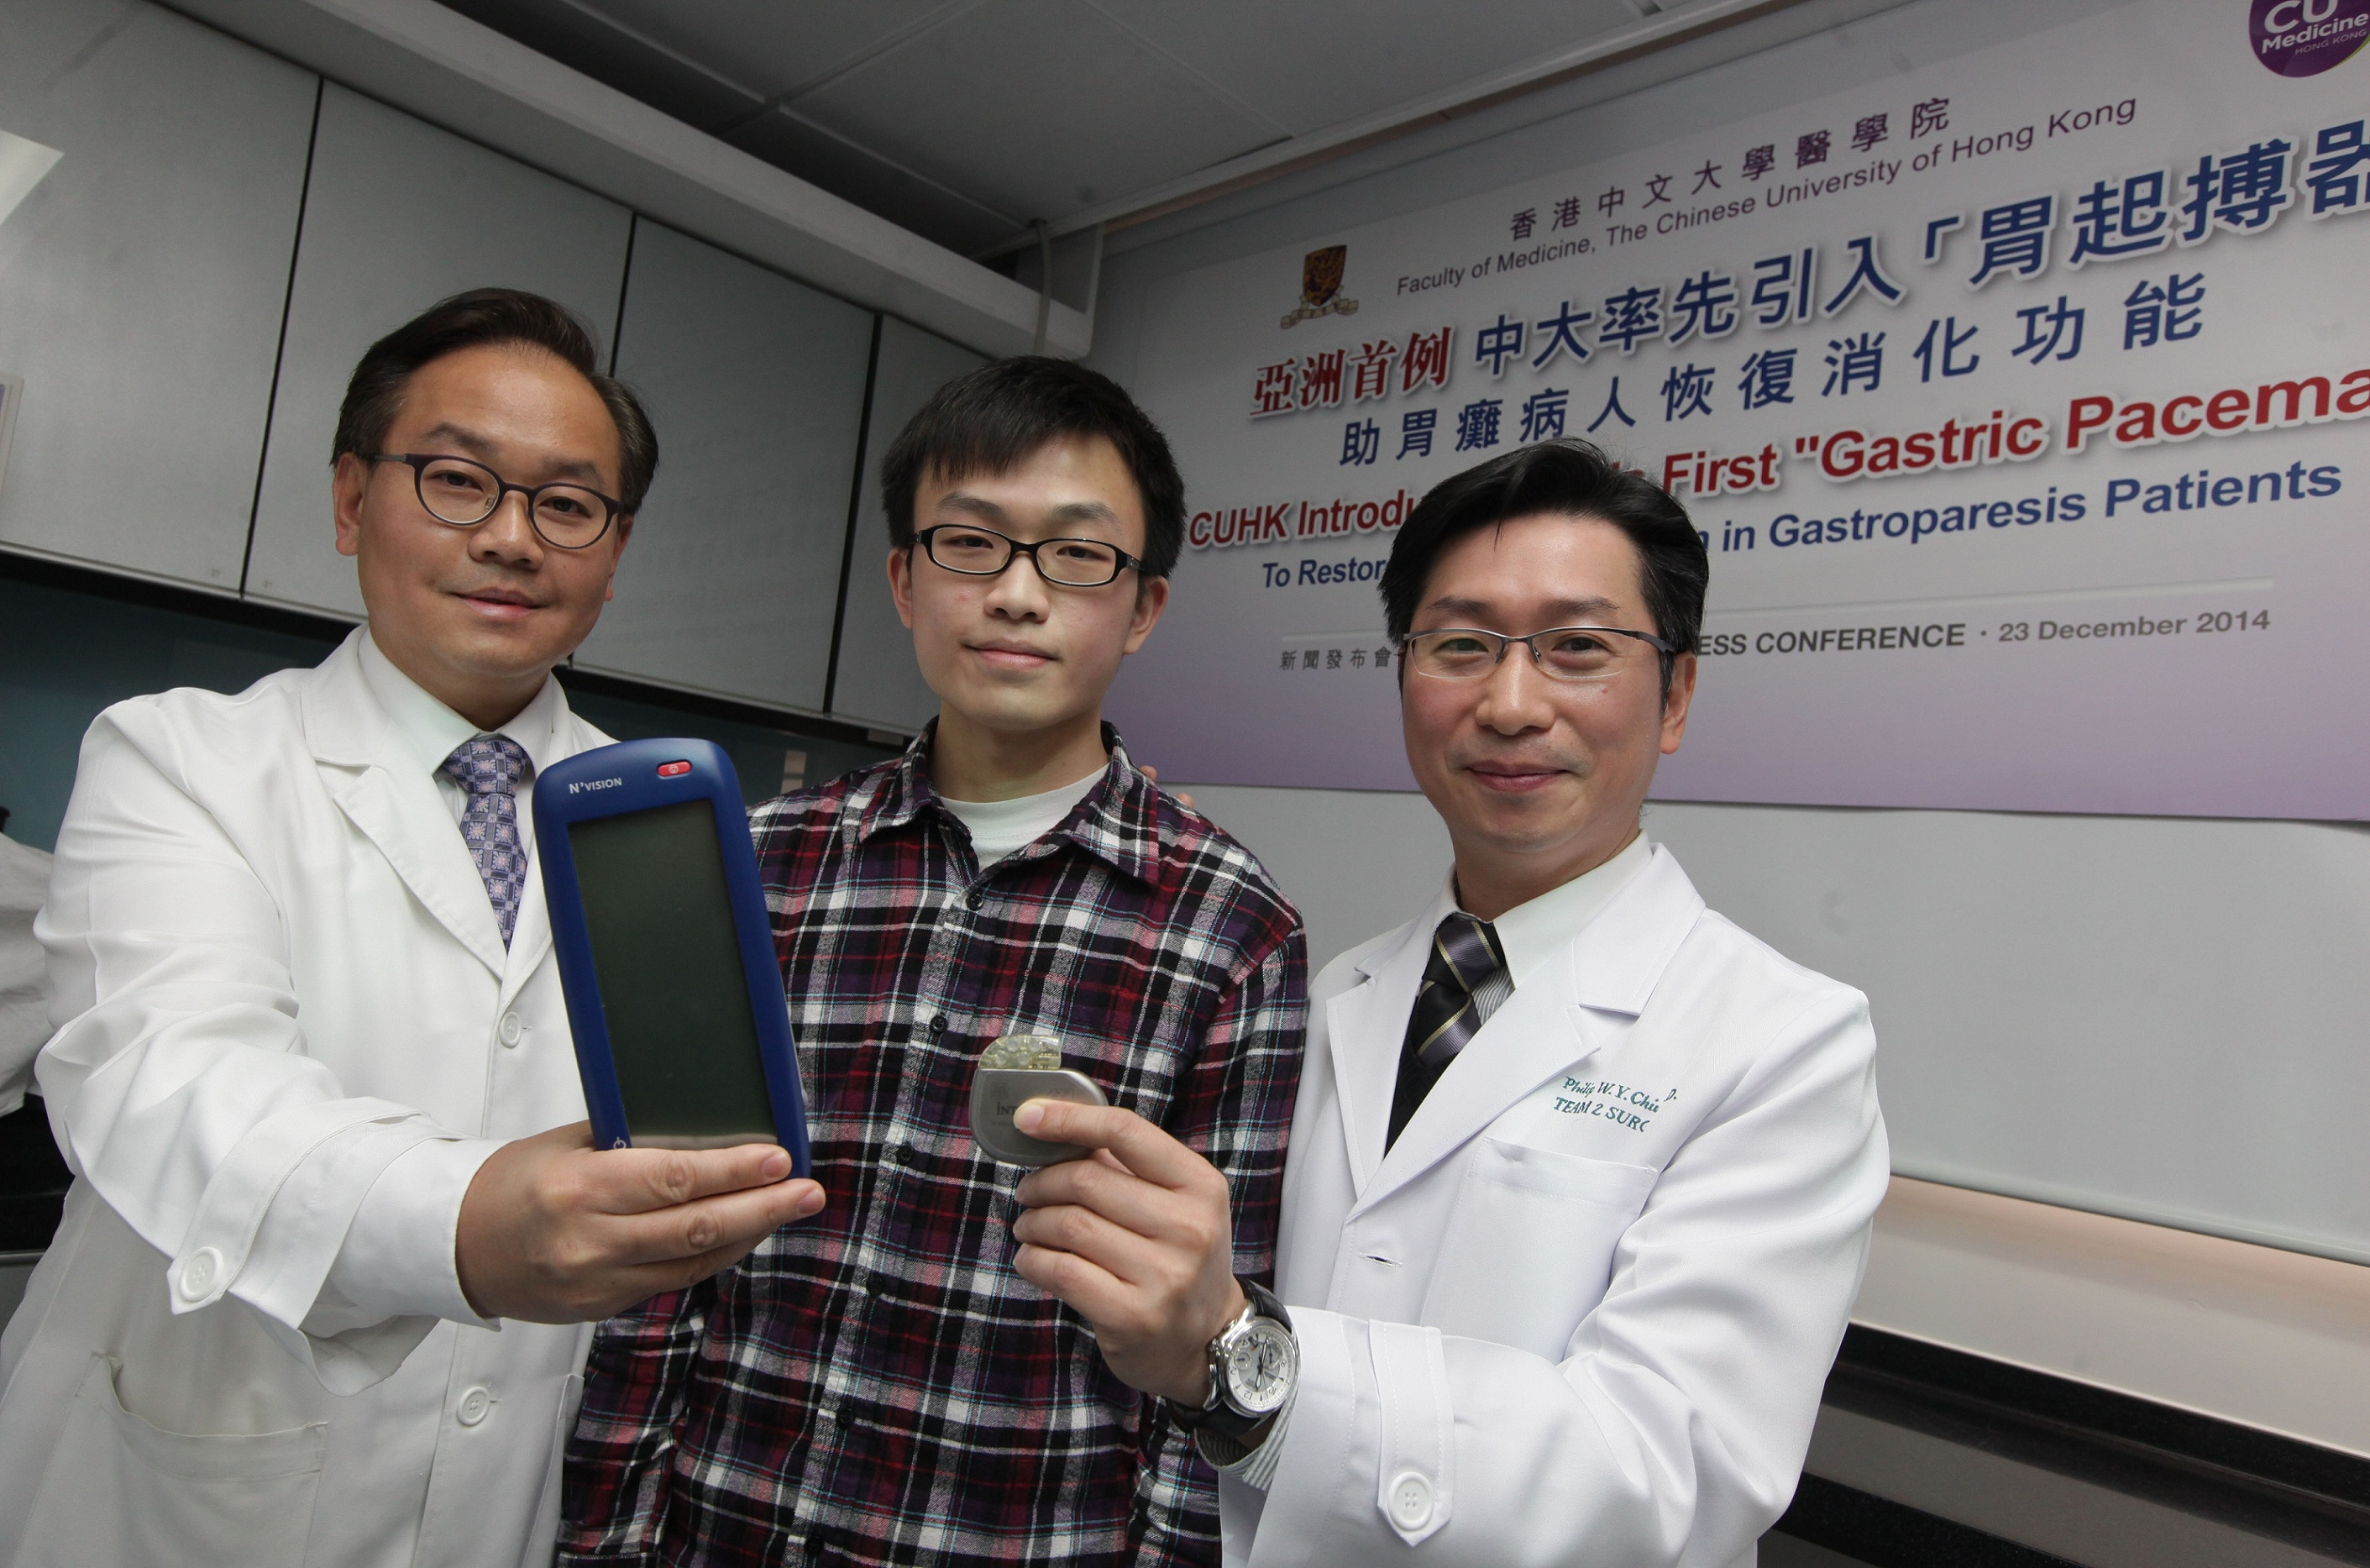 """The patient who underwent Asia's first """"Gastric Pacemaker"""" implant surgery, Chan Chi-kit (middle), and the responsible doctors - Professor CHIU Wai Yan Philip (right), Assistant Dean (External Affairs) of the Faculty of Medicine and Director of the CUHK Jockey Club Minimally Invasive Surgical Skills Centre, and Professor WU Che Yuen Justin (left), Associate Dean (Development) of the Faculty of Medicine and Director of the S.H. Ho Centre for Digestive Health – pose for a group photo. On Professor Chiu's and Professor Wu's hands are the six-centimetre-long """"Gastric Pacemaker"""" and monitor instrument respectively."""